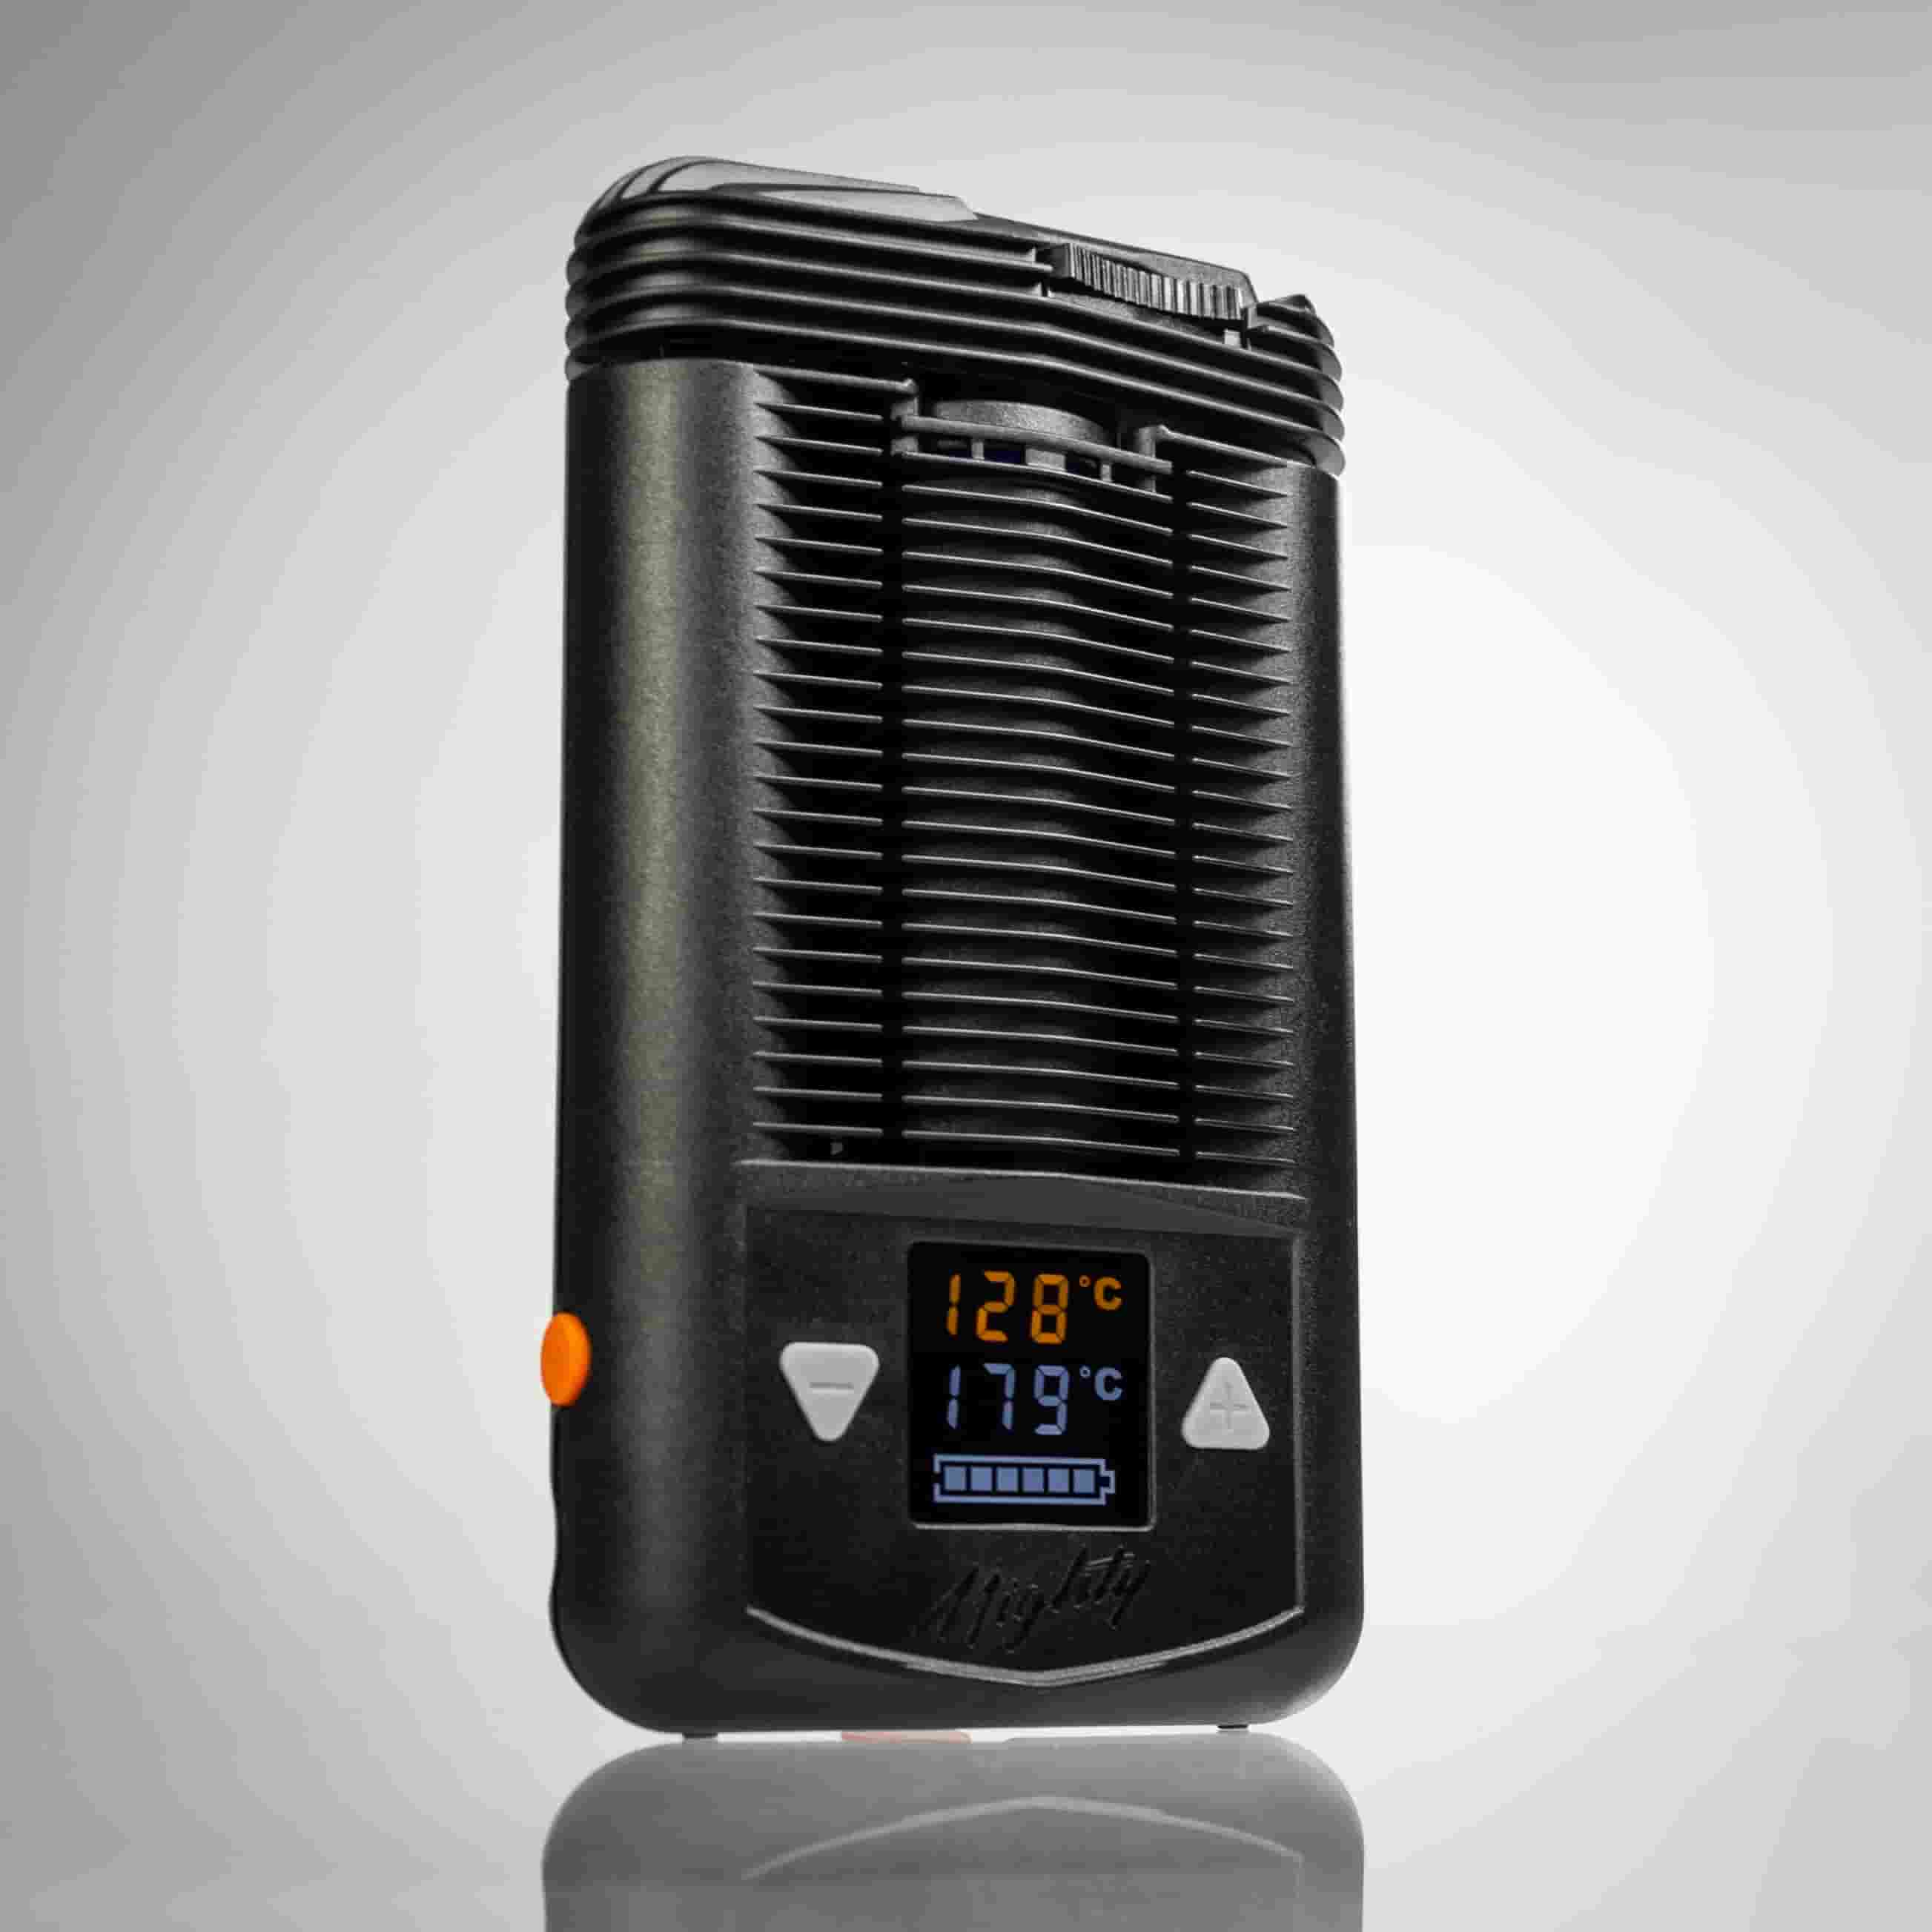 Mighty Vaporizer 420 Offers